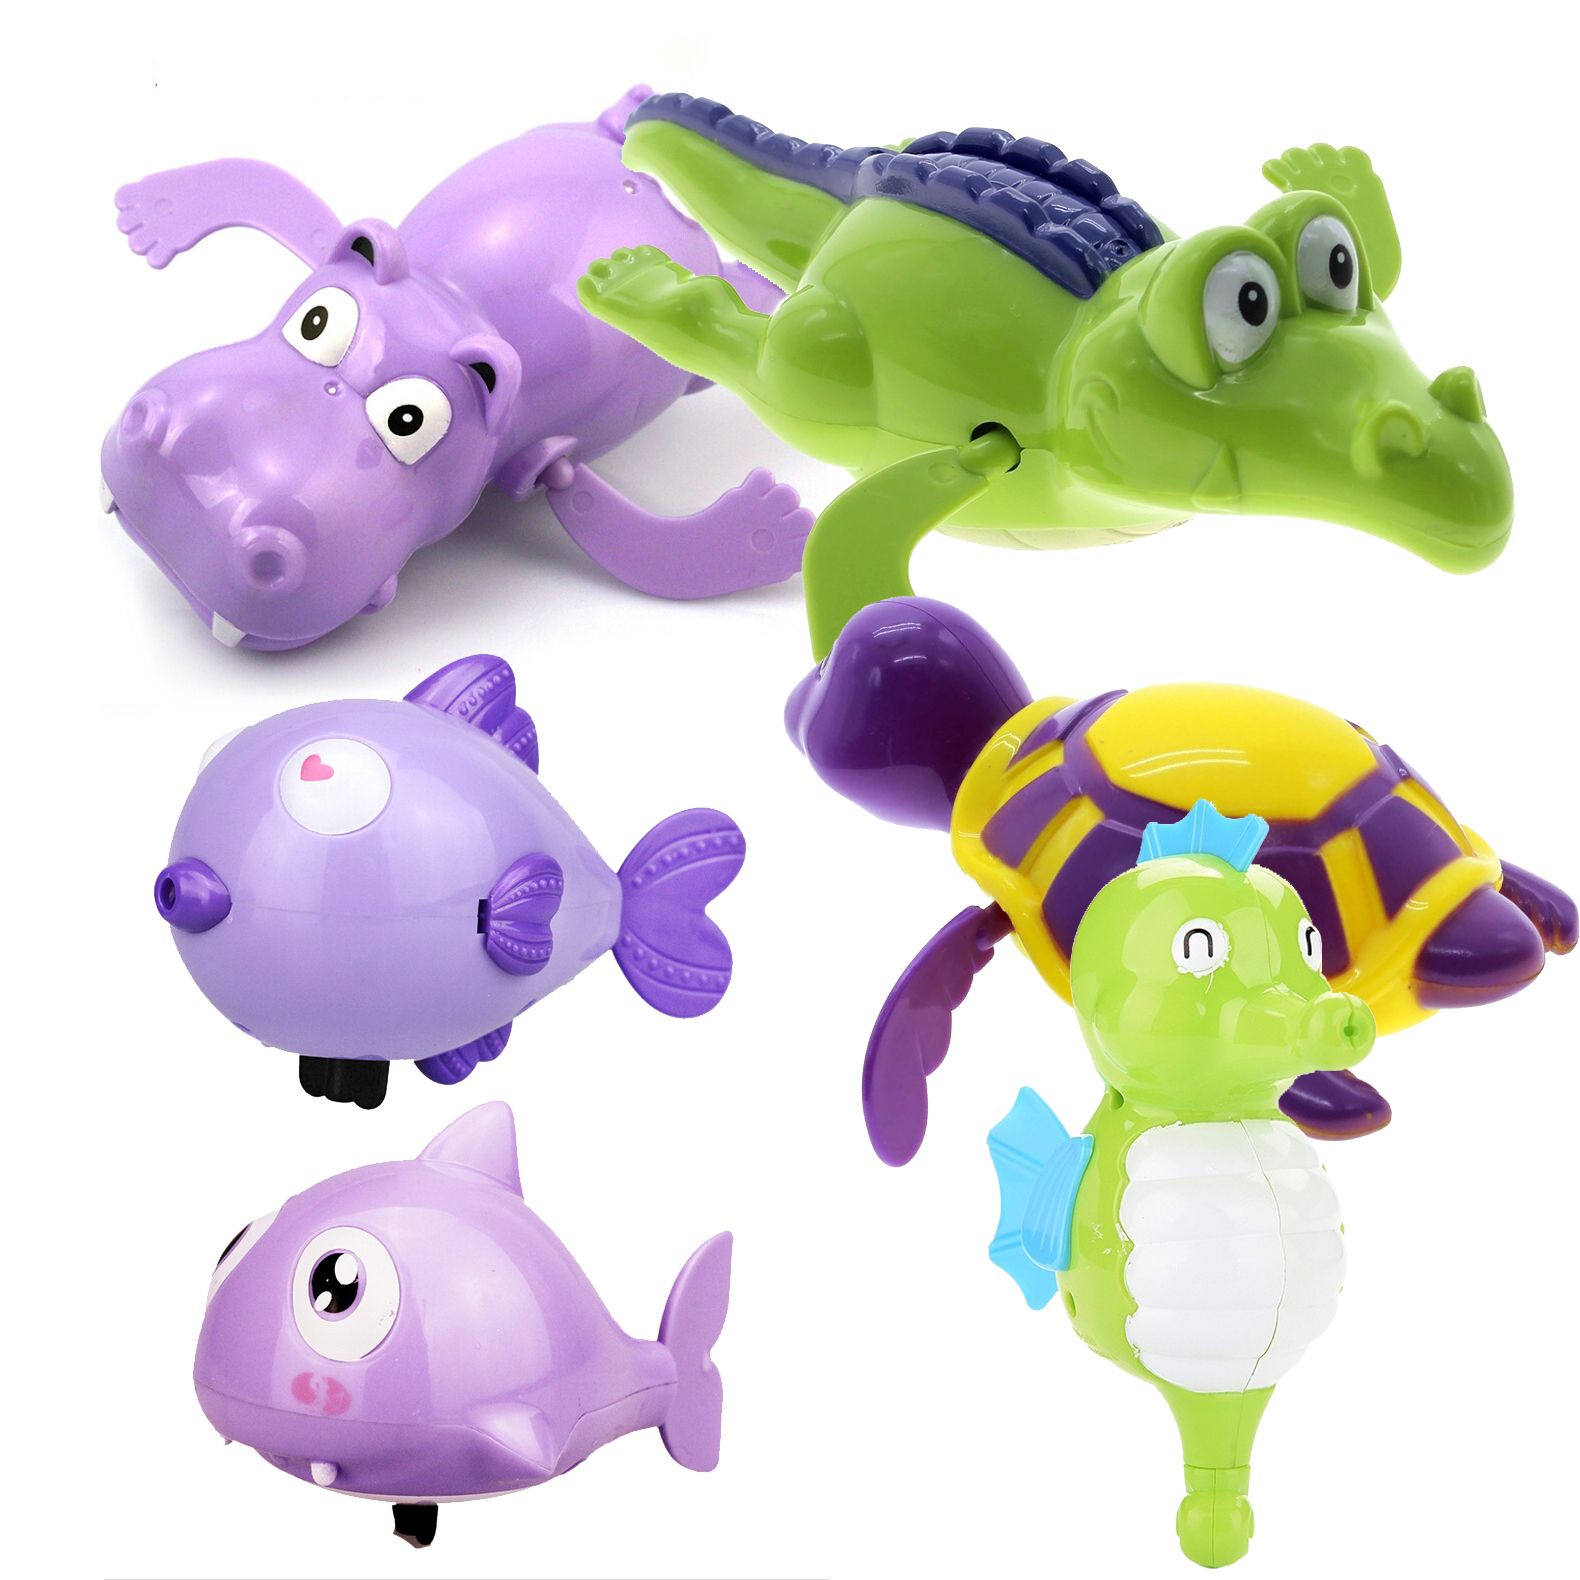 Hot Shower Kids Bath Toys Plastic Baby Wind Up Clockwork Swimming